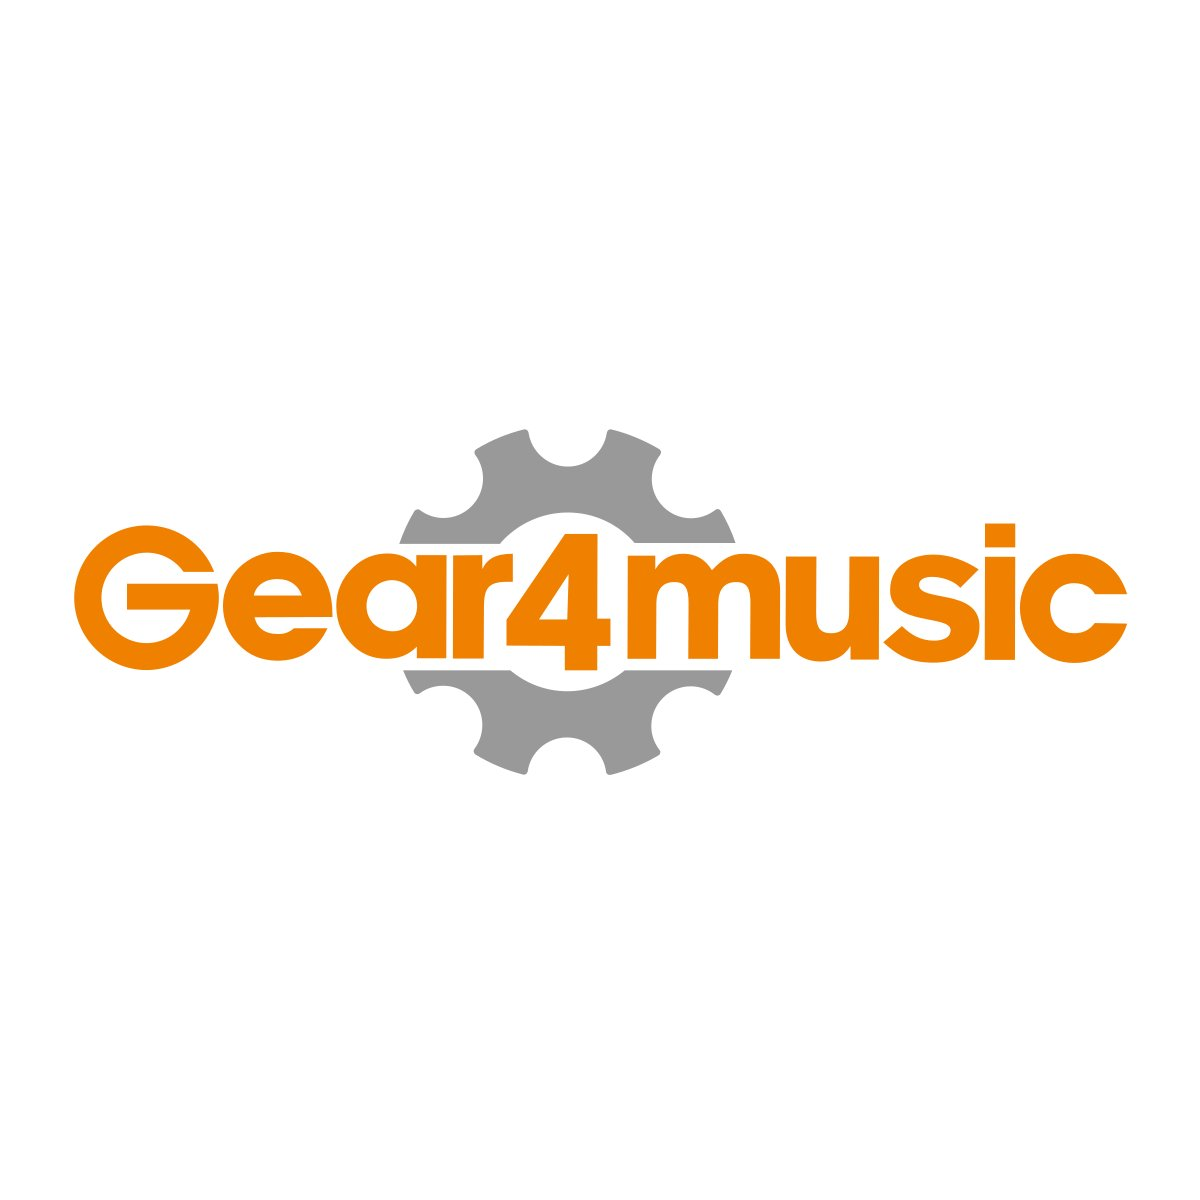 Profesjonalne Eufonium Coppergate, Gear4music